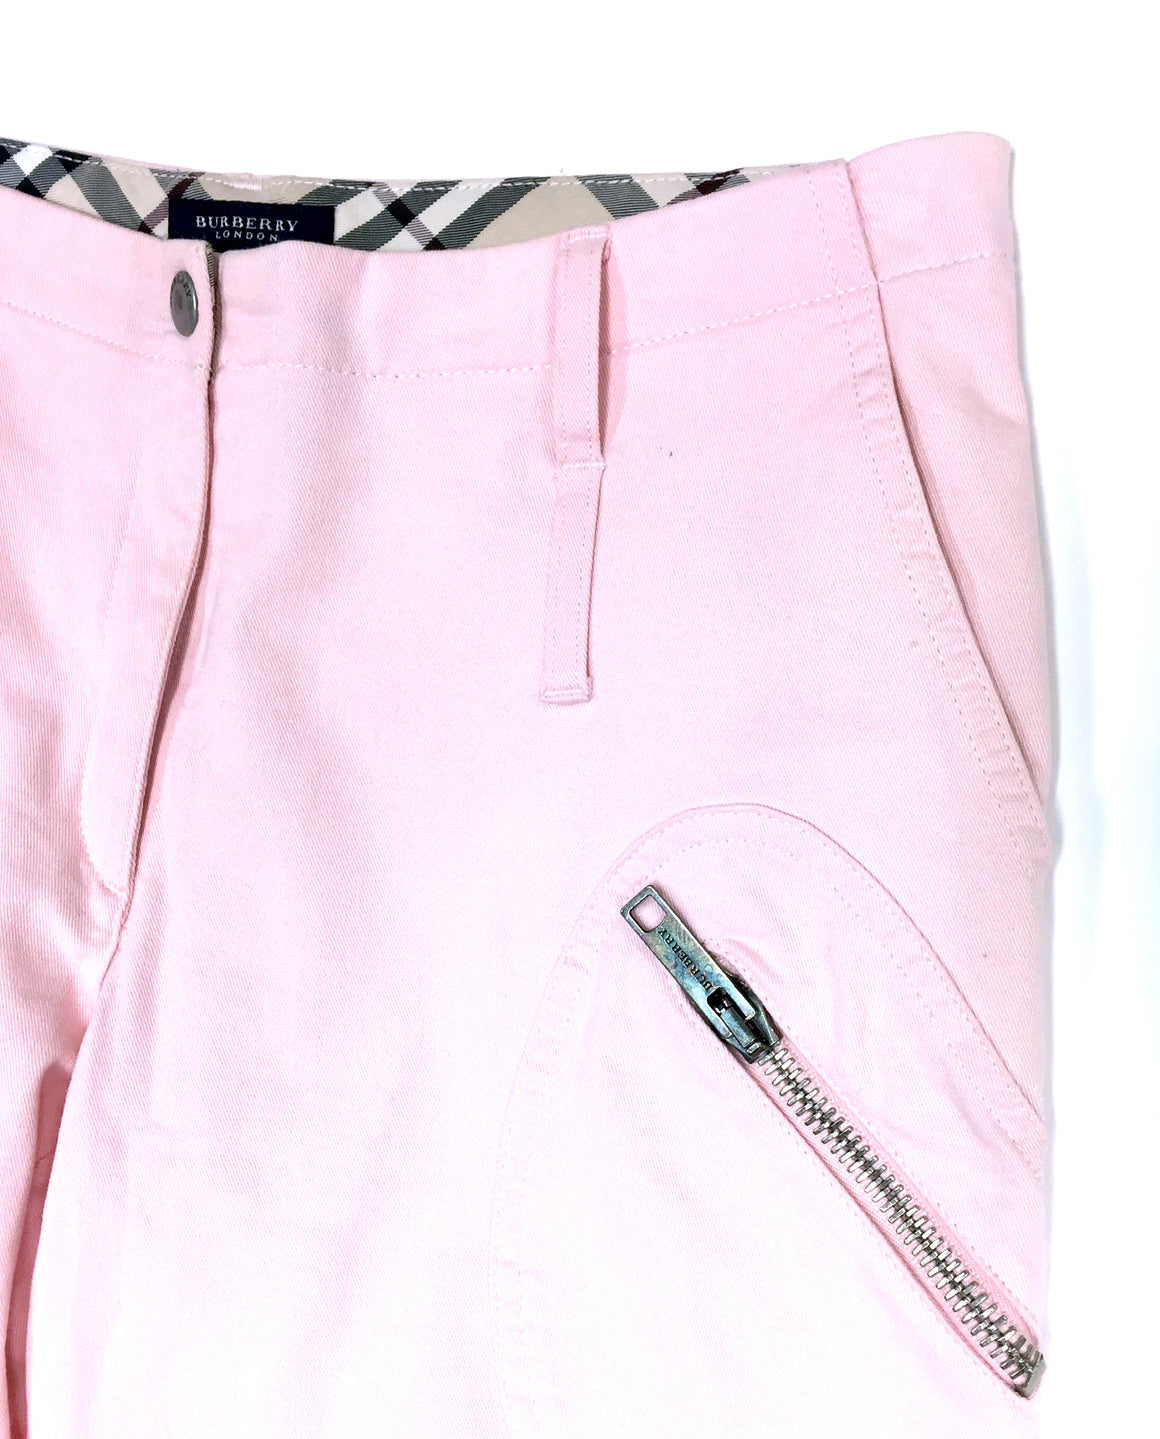 bisbiz.com BURBERRY Pink Cotton-Blend Multi Zip Pockets Cropped Cargo Pants / Jeans Size: US 4 / UK 6 - Bis Luxury Resale